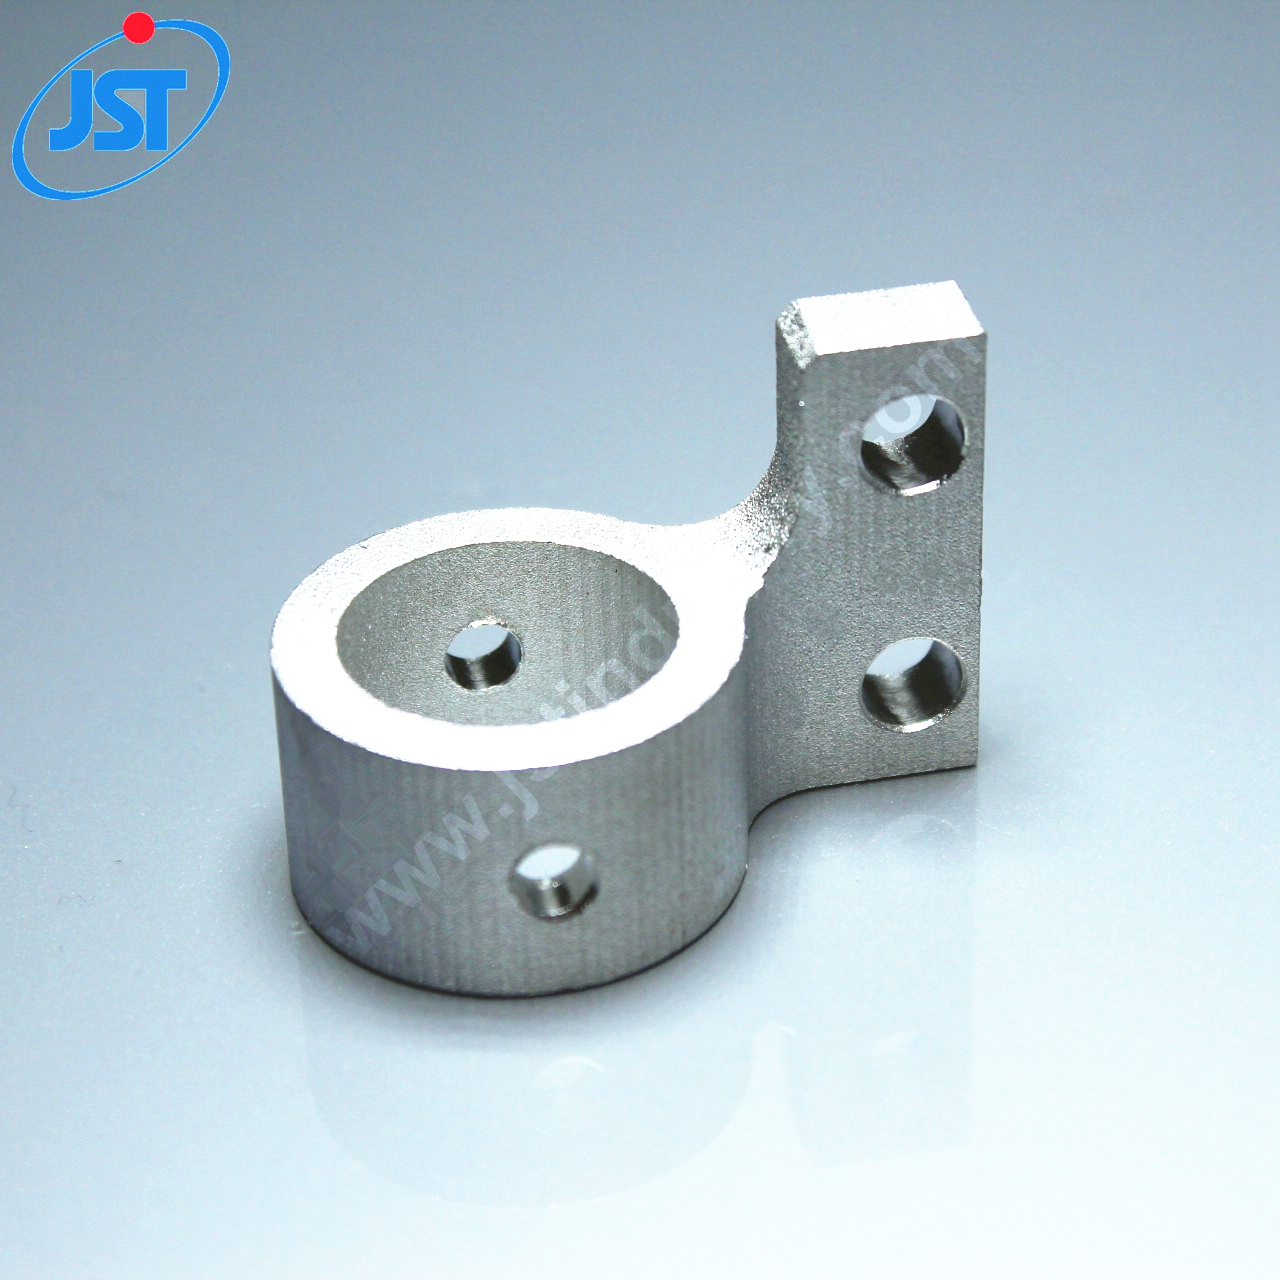 What are the characteristics of cnc milling aluminum parts?